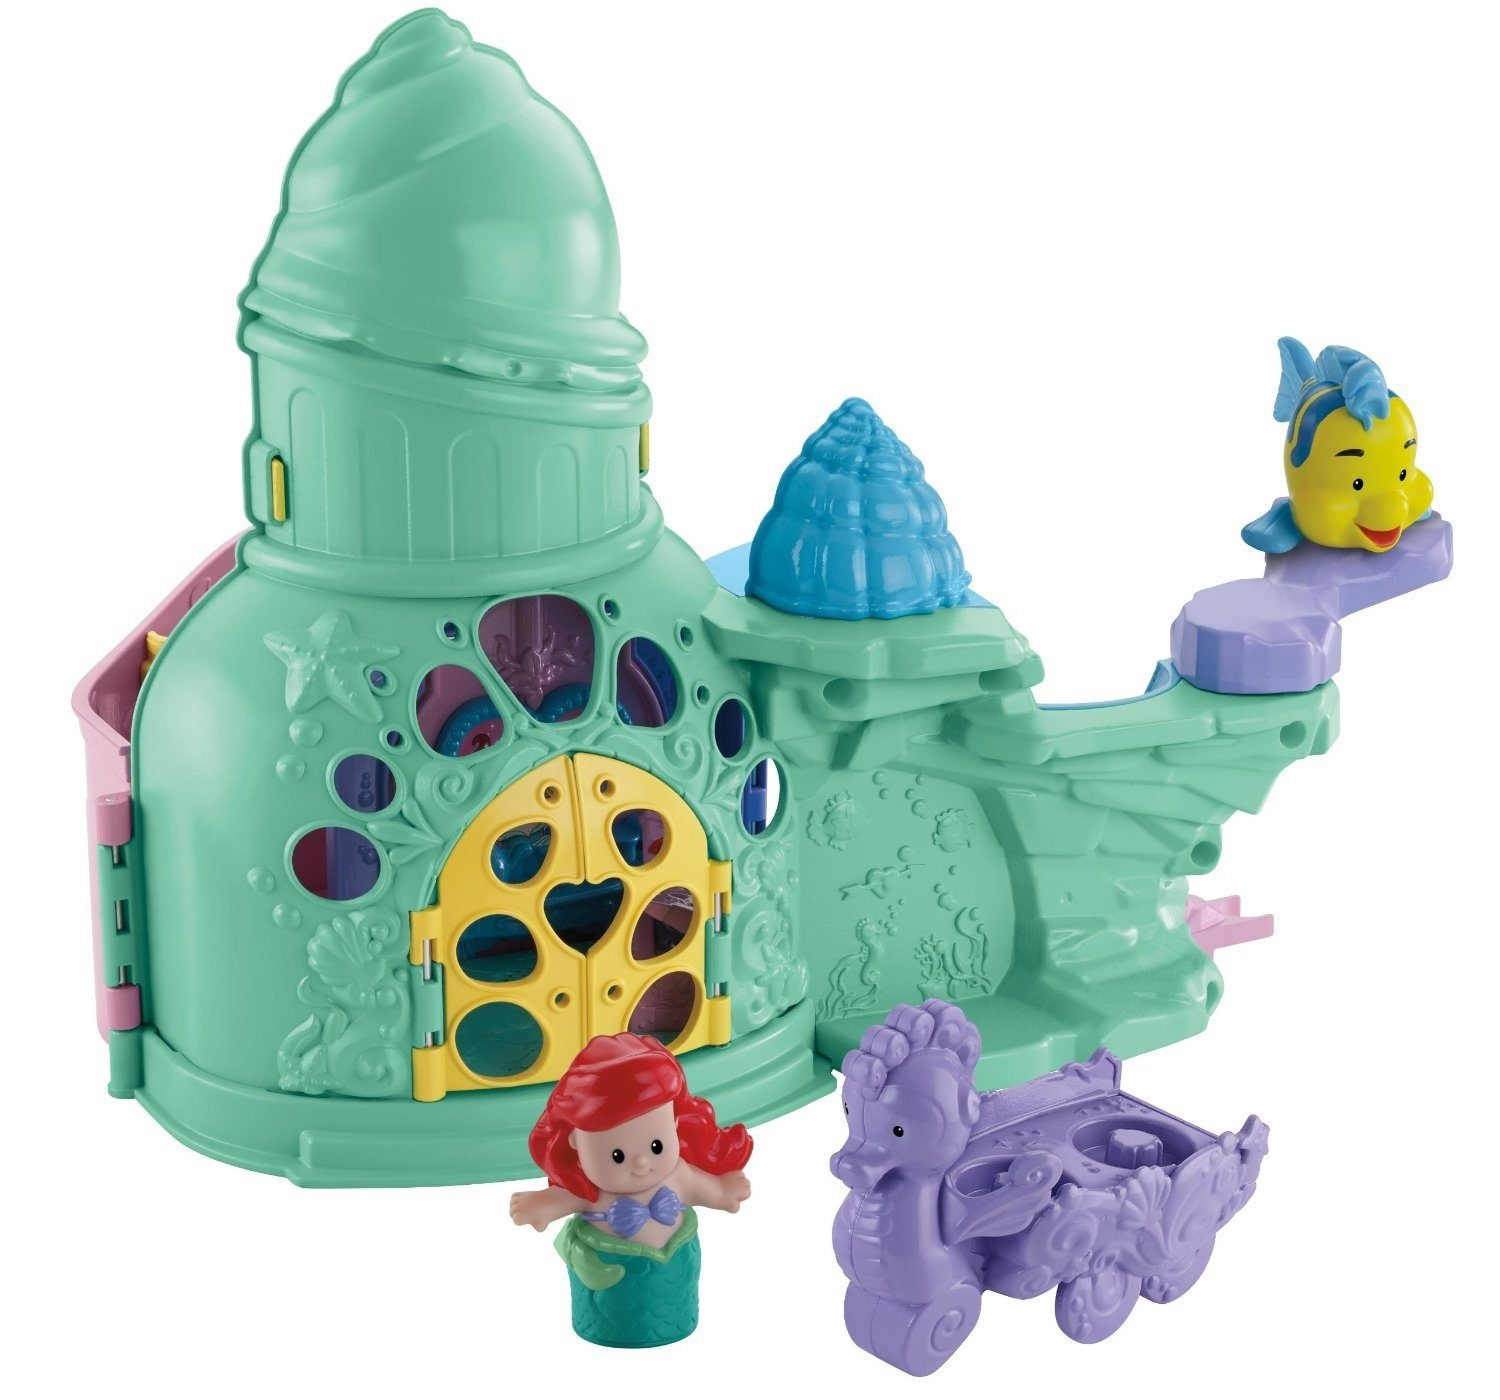 Fisher-Price Little People Disney Princess Ariel and Flounder Playset